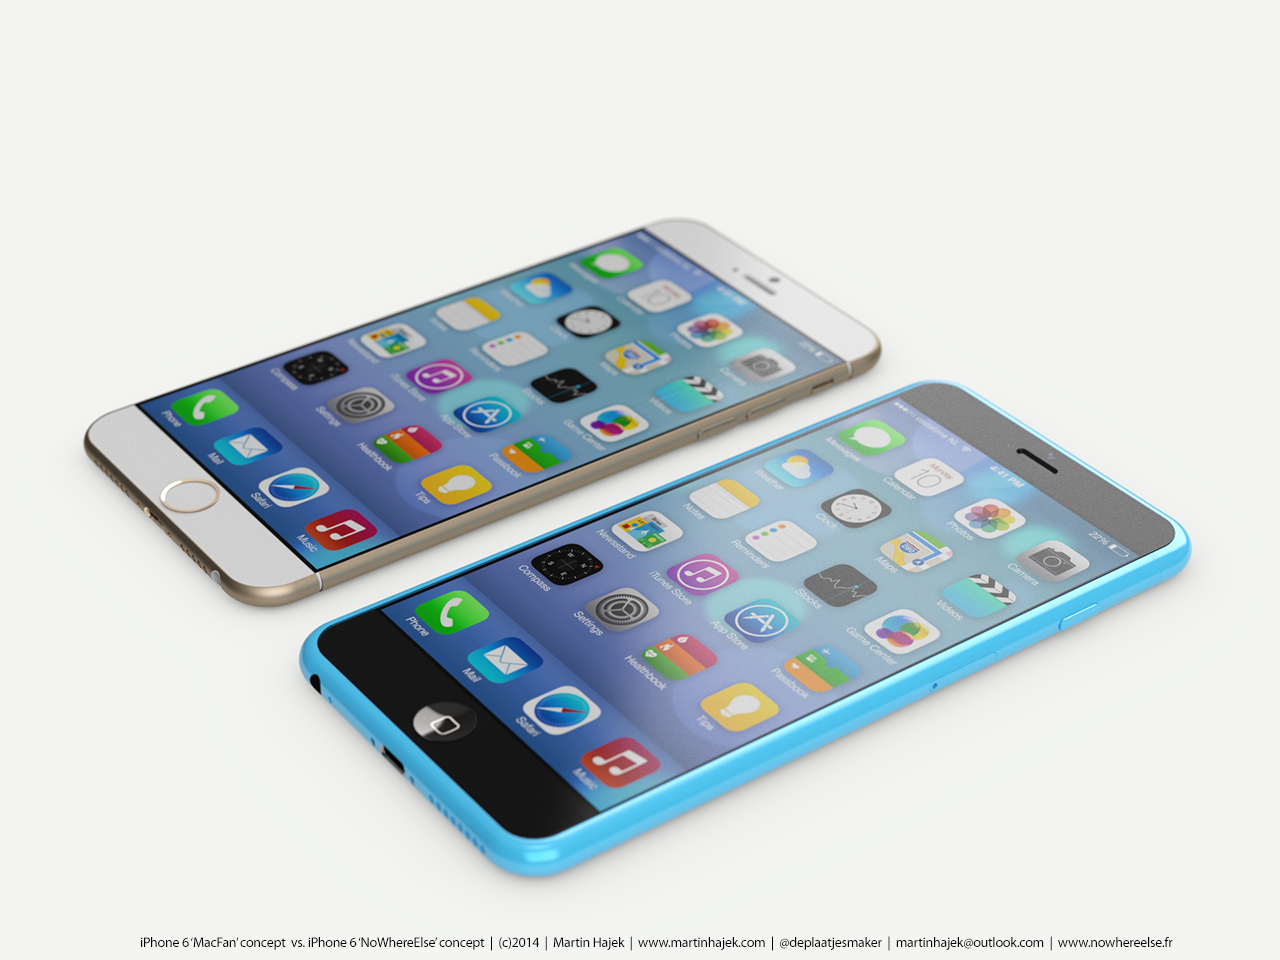 Apple Rumoured To Release A 4-Inch iPhone 5SE Apple Rumoured To Release A 4-Inch iPhone 5SE new picture